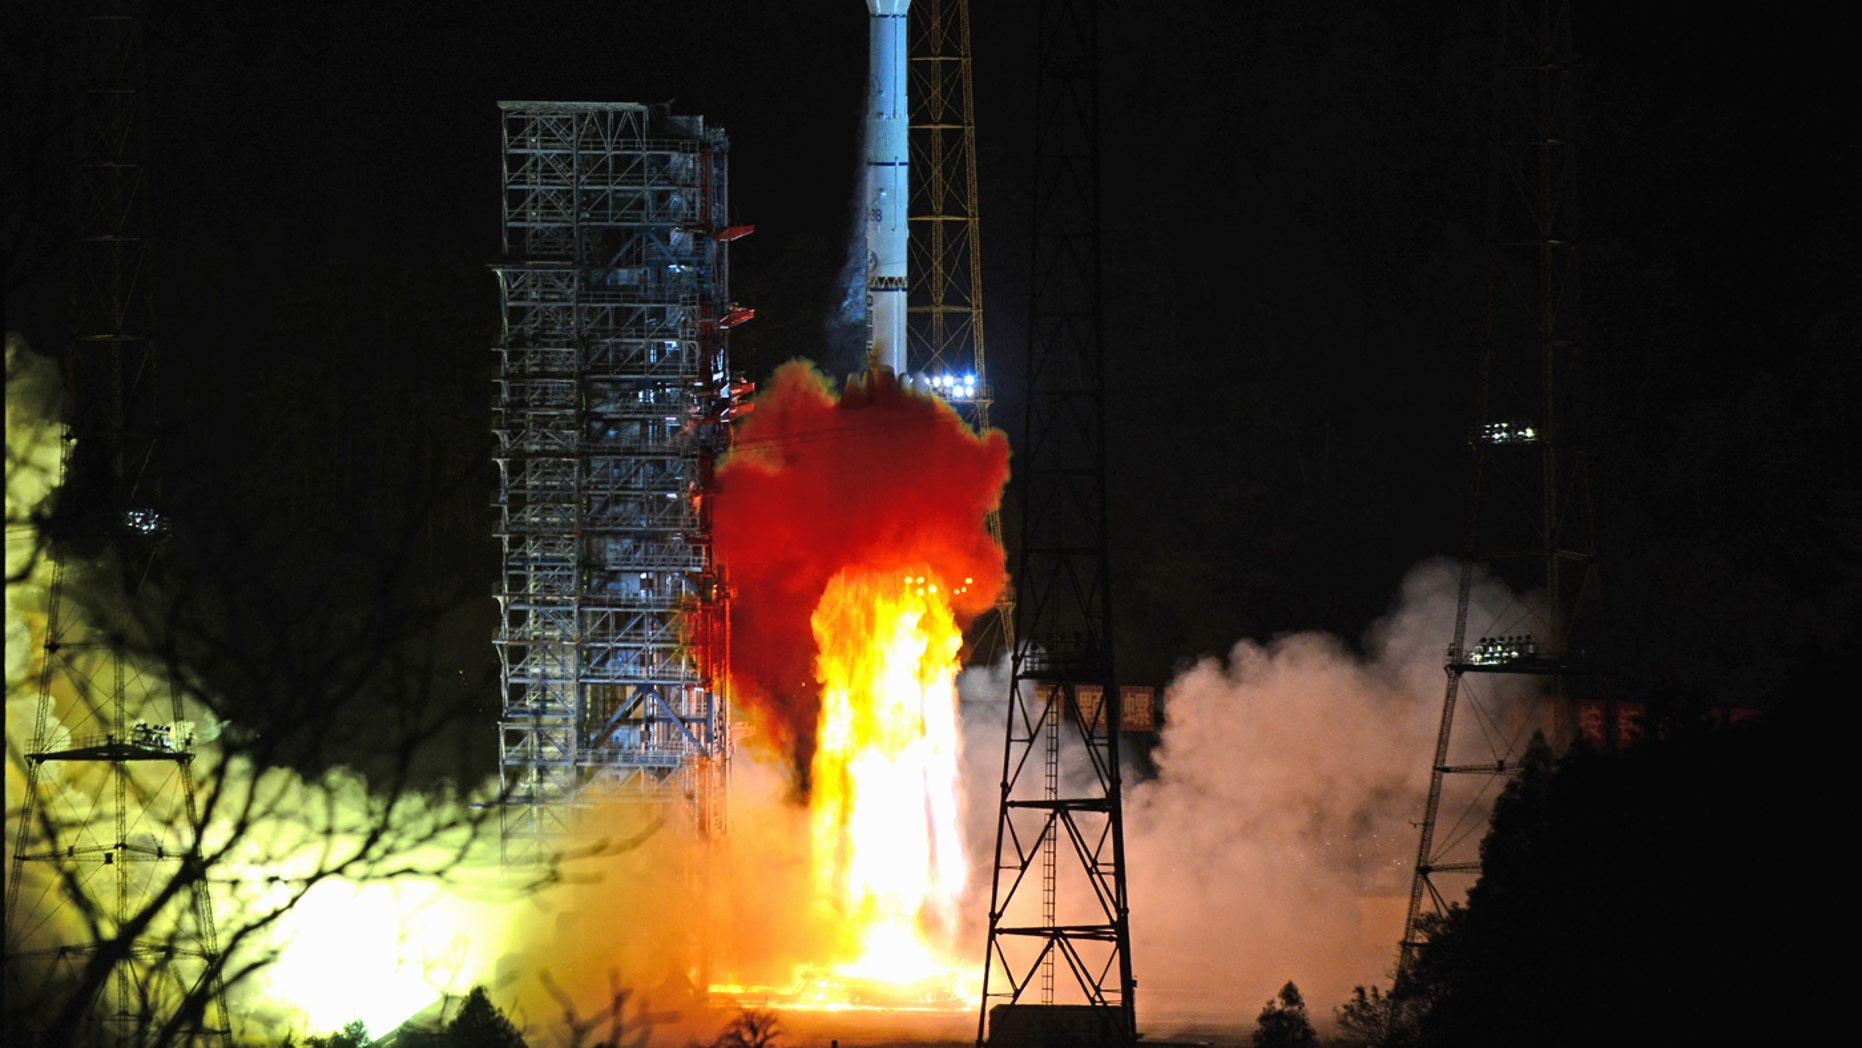 """XICHANG, CHINA - DECEMBER 8: A long March 3B rocket carrying the Chang'e-4 lunar probe, including a lander and a rover, launches on December 8, 201<div class=""""e3lan e3lan-in-post1""""><script async src=""""//pagead2.googlesyndication.com/pagead/js/adsbygoogle.js""""></script> <!-- Text_Display_Responsive --> <ins class=""""adsbygoogle""""      style=""""display:block""""      data-ad-client=""""ca-pub-6192903739091894""""      data-ad-slot=""""3136787391""""      data-ad-format=""""auto""""      data-full-width-responsive=""""true""""></ins> <script> (adsbygoogle = window.adsbygoogle    []).push({}); </script></div>8 from the Xichang Satellite Launch Center in Xichang, Sichuan Province, China. (Photo by VCG / VCG via Getty Images)"""